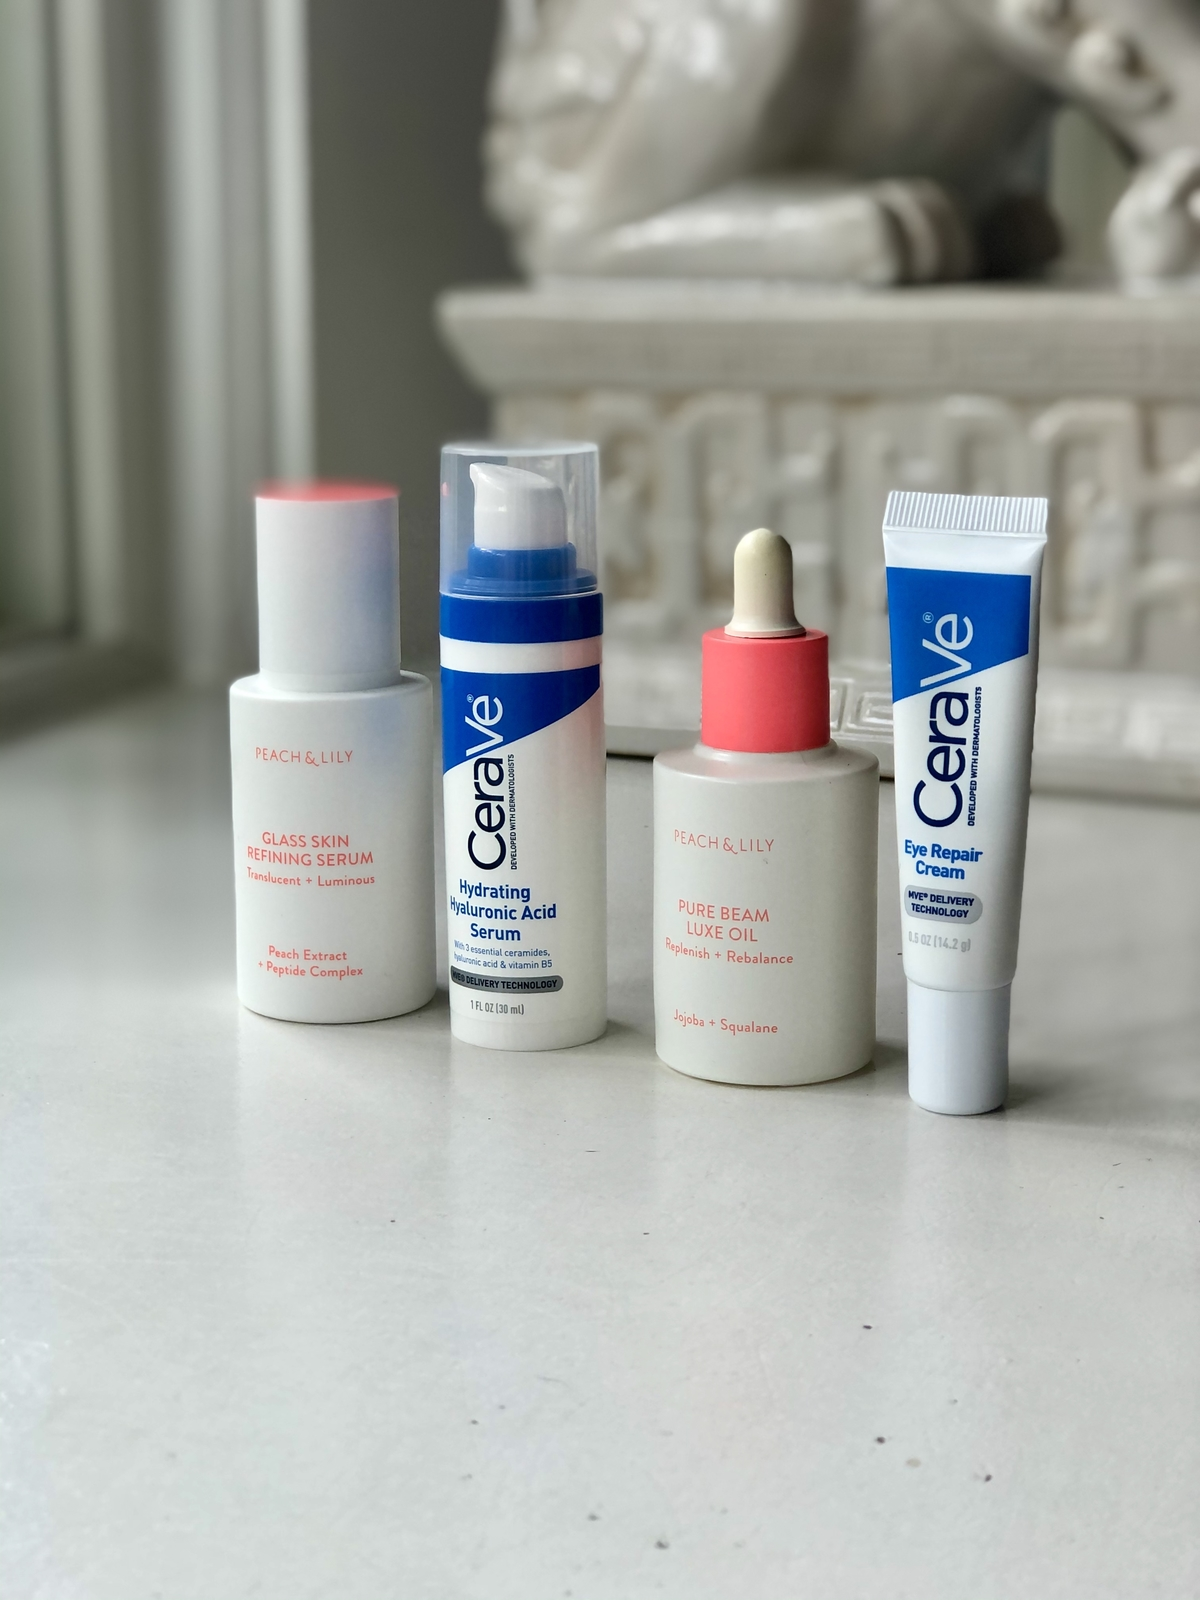 My current no-moisturizer summer skincare routine using two different-textured serums, an oil and an eye cream